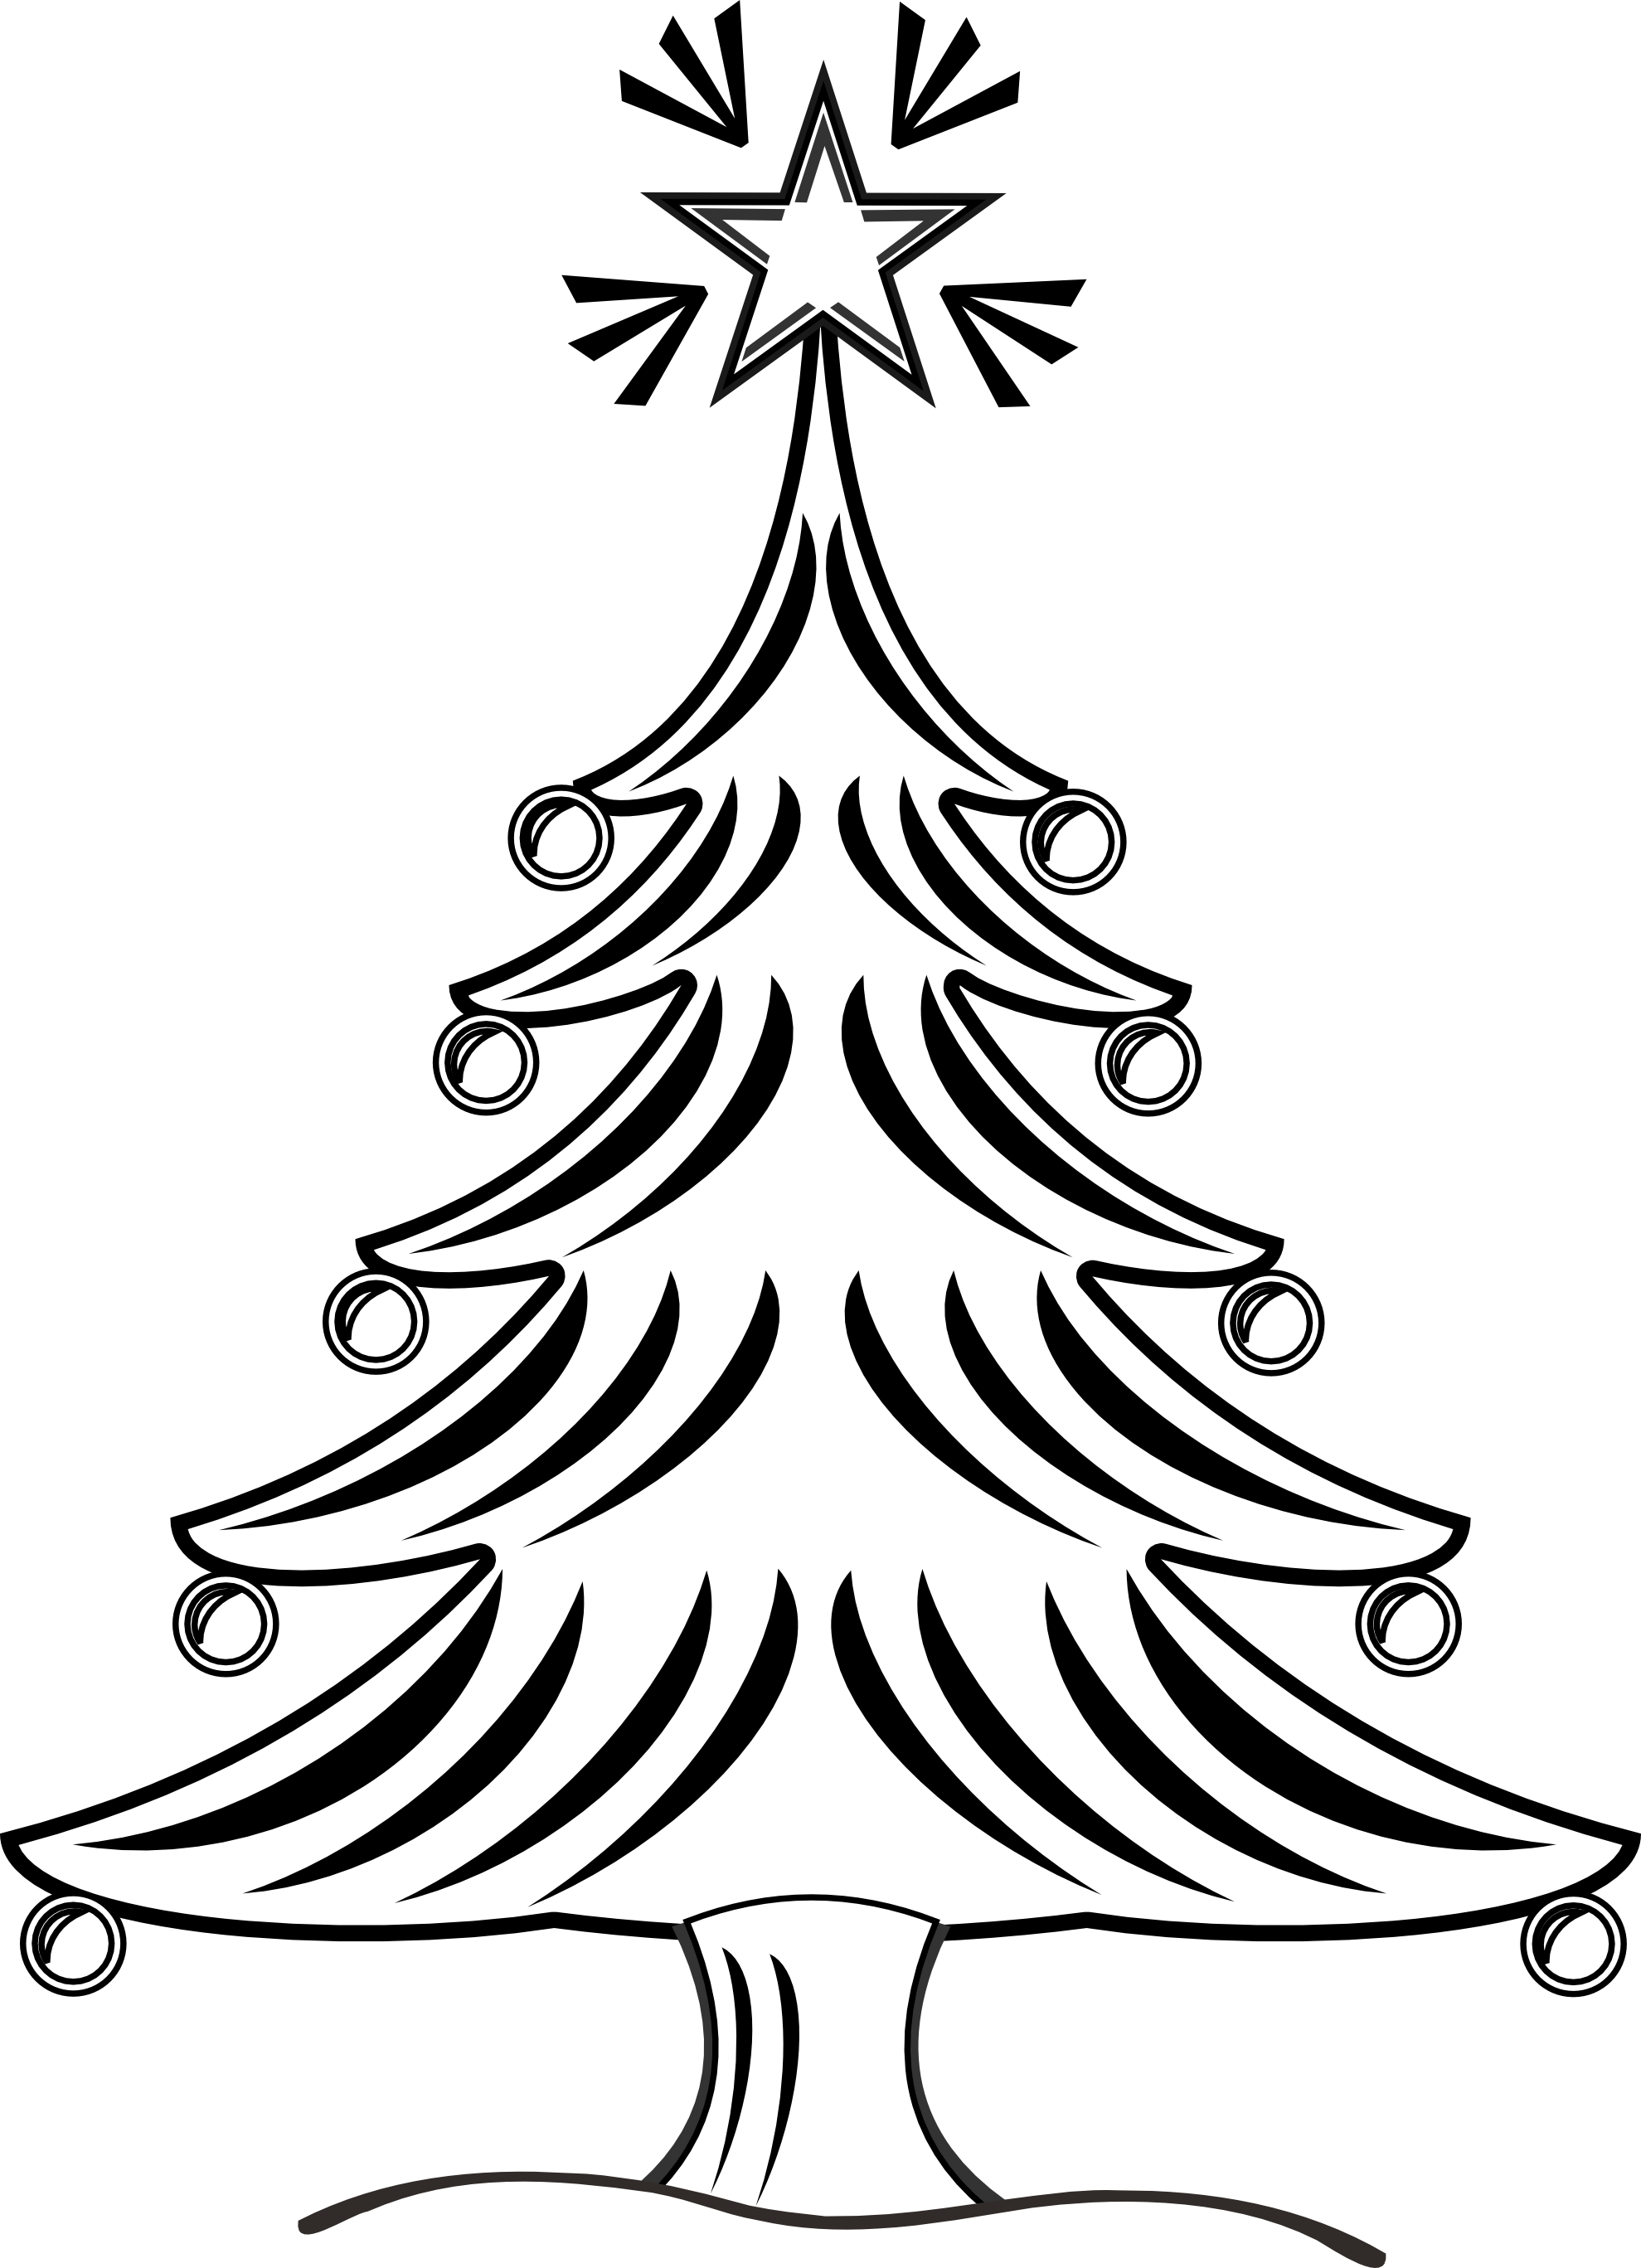 Free Christmas Clip Art Black And White, Download Free Clip.